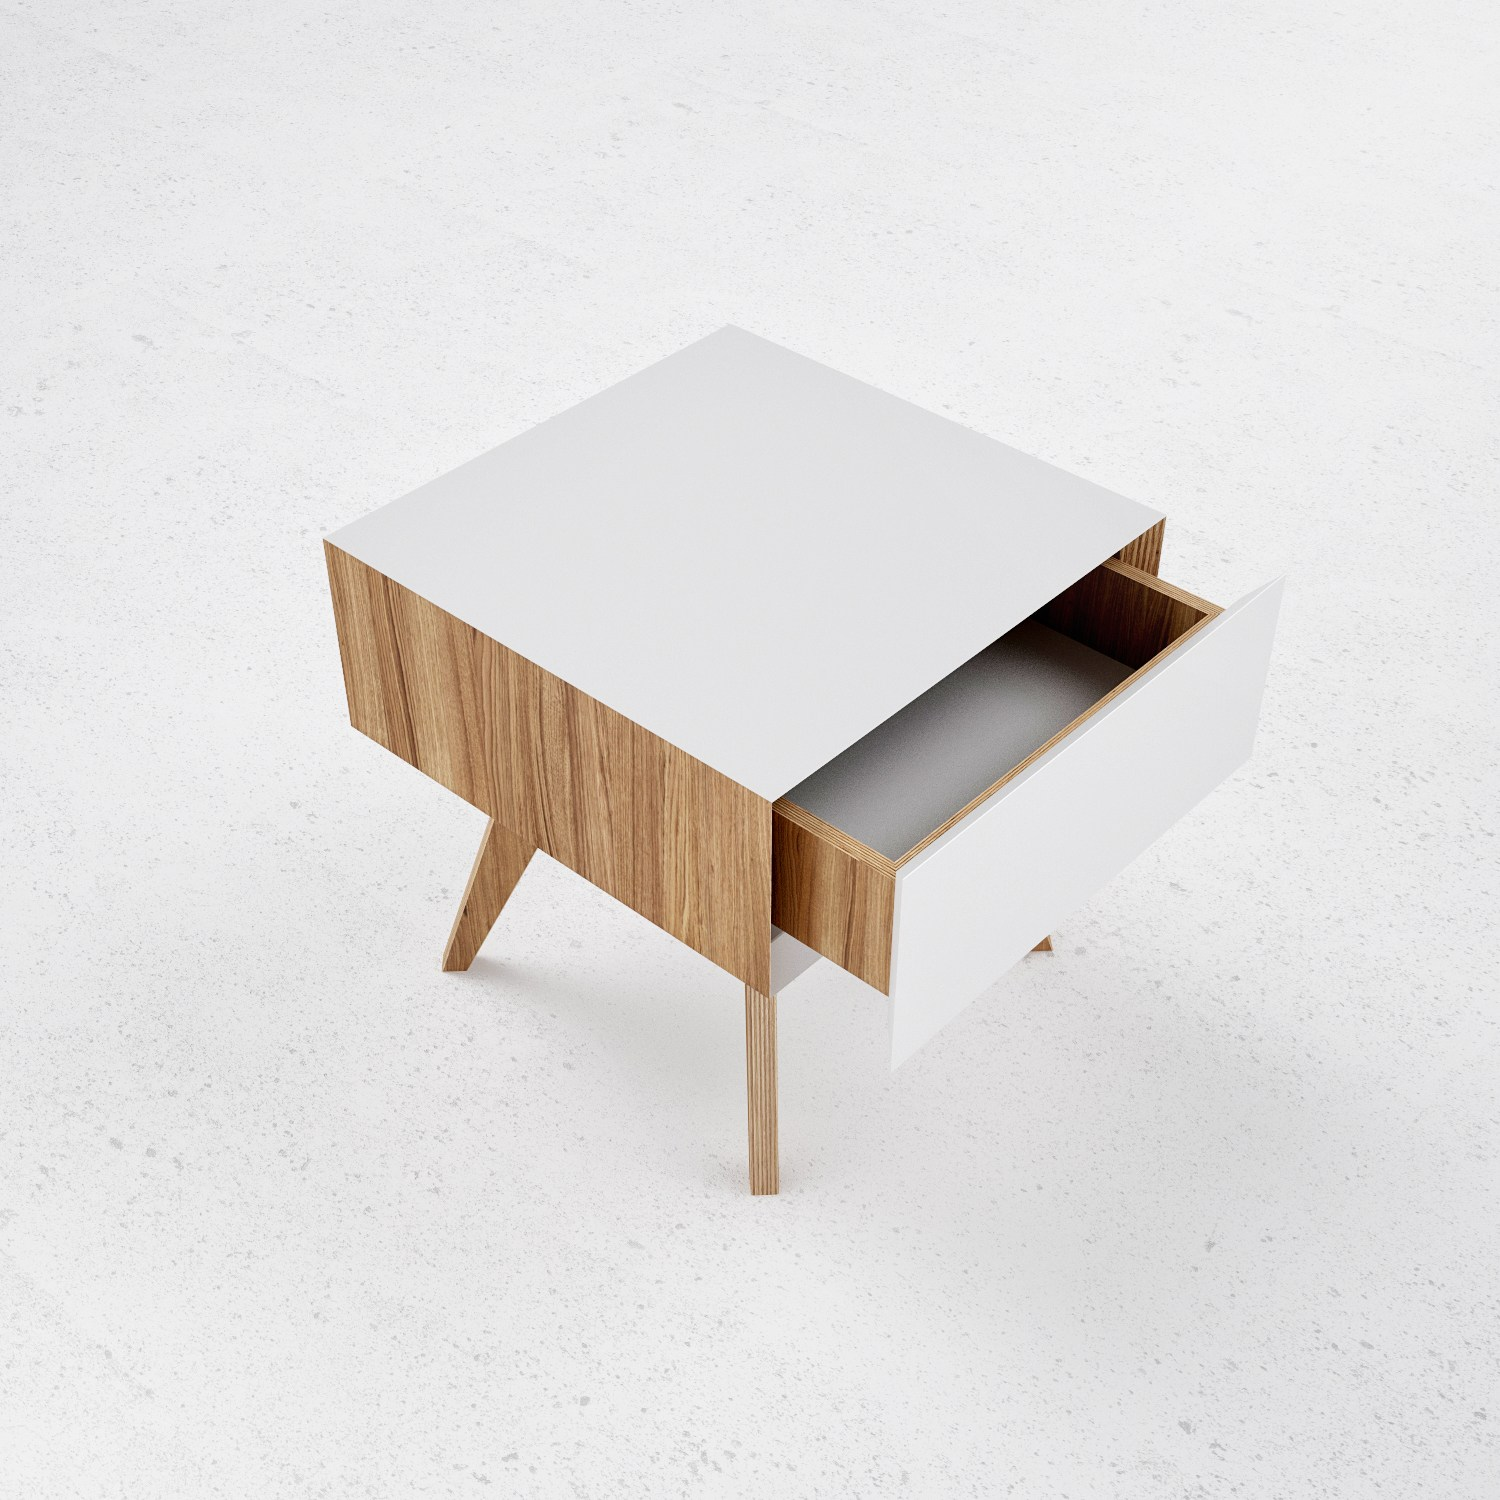 Steel and wood bedside table h1 by odesd2 design for Wood and metal bedside table